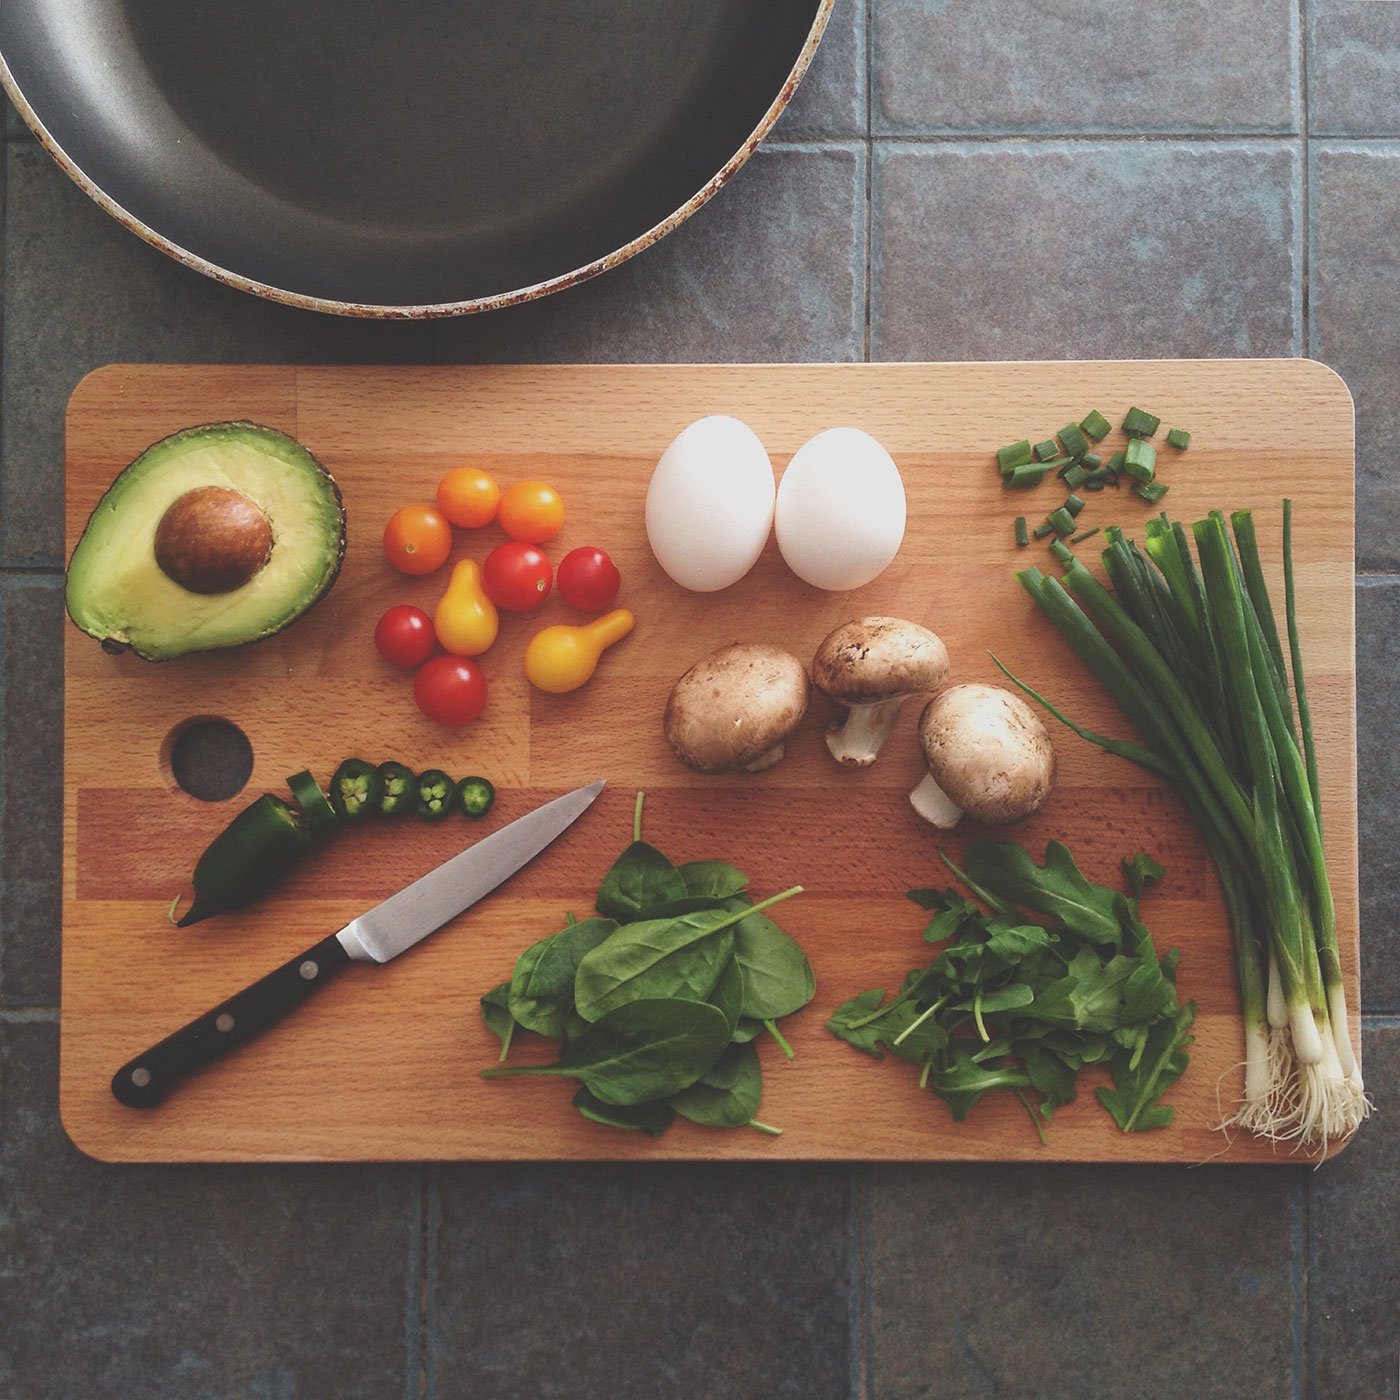 Purchasing-Food and Beverages: a wooden cutting board with vegetables and fruits on top of it, as well as a knife ready to cut them to make them into a dish.